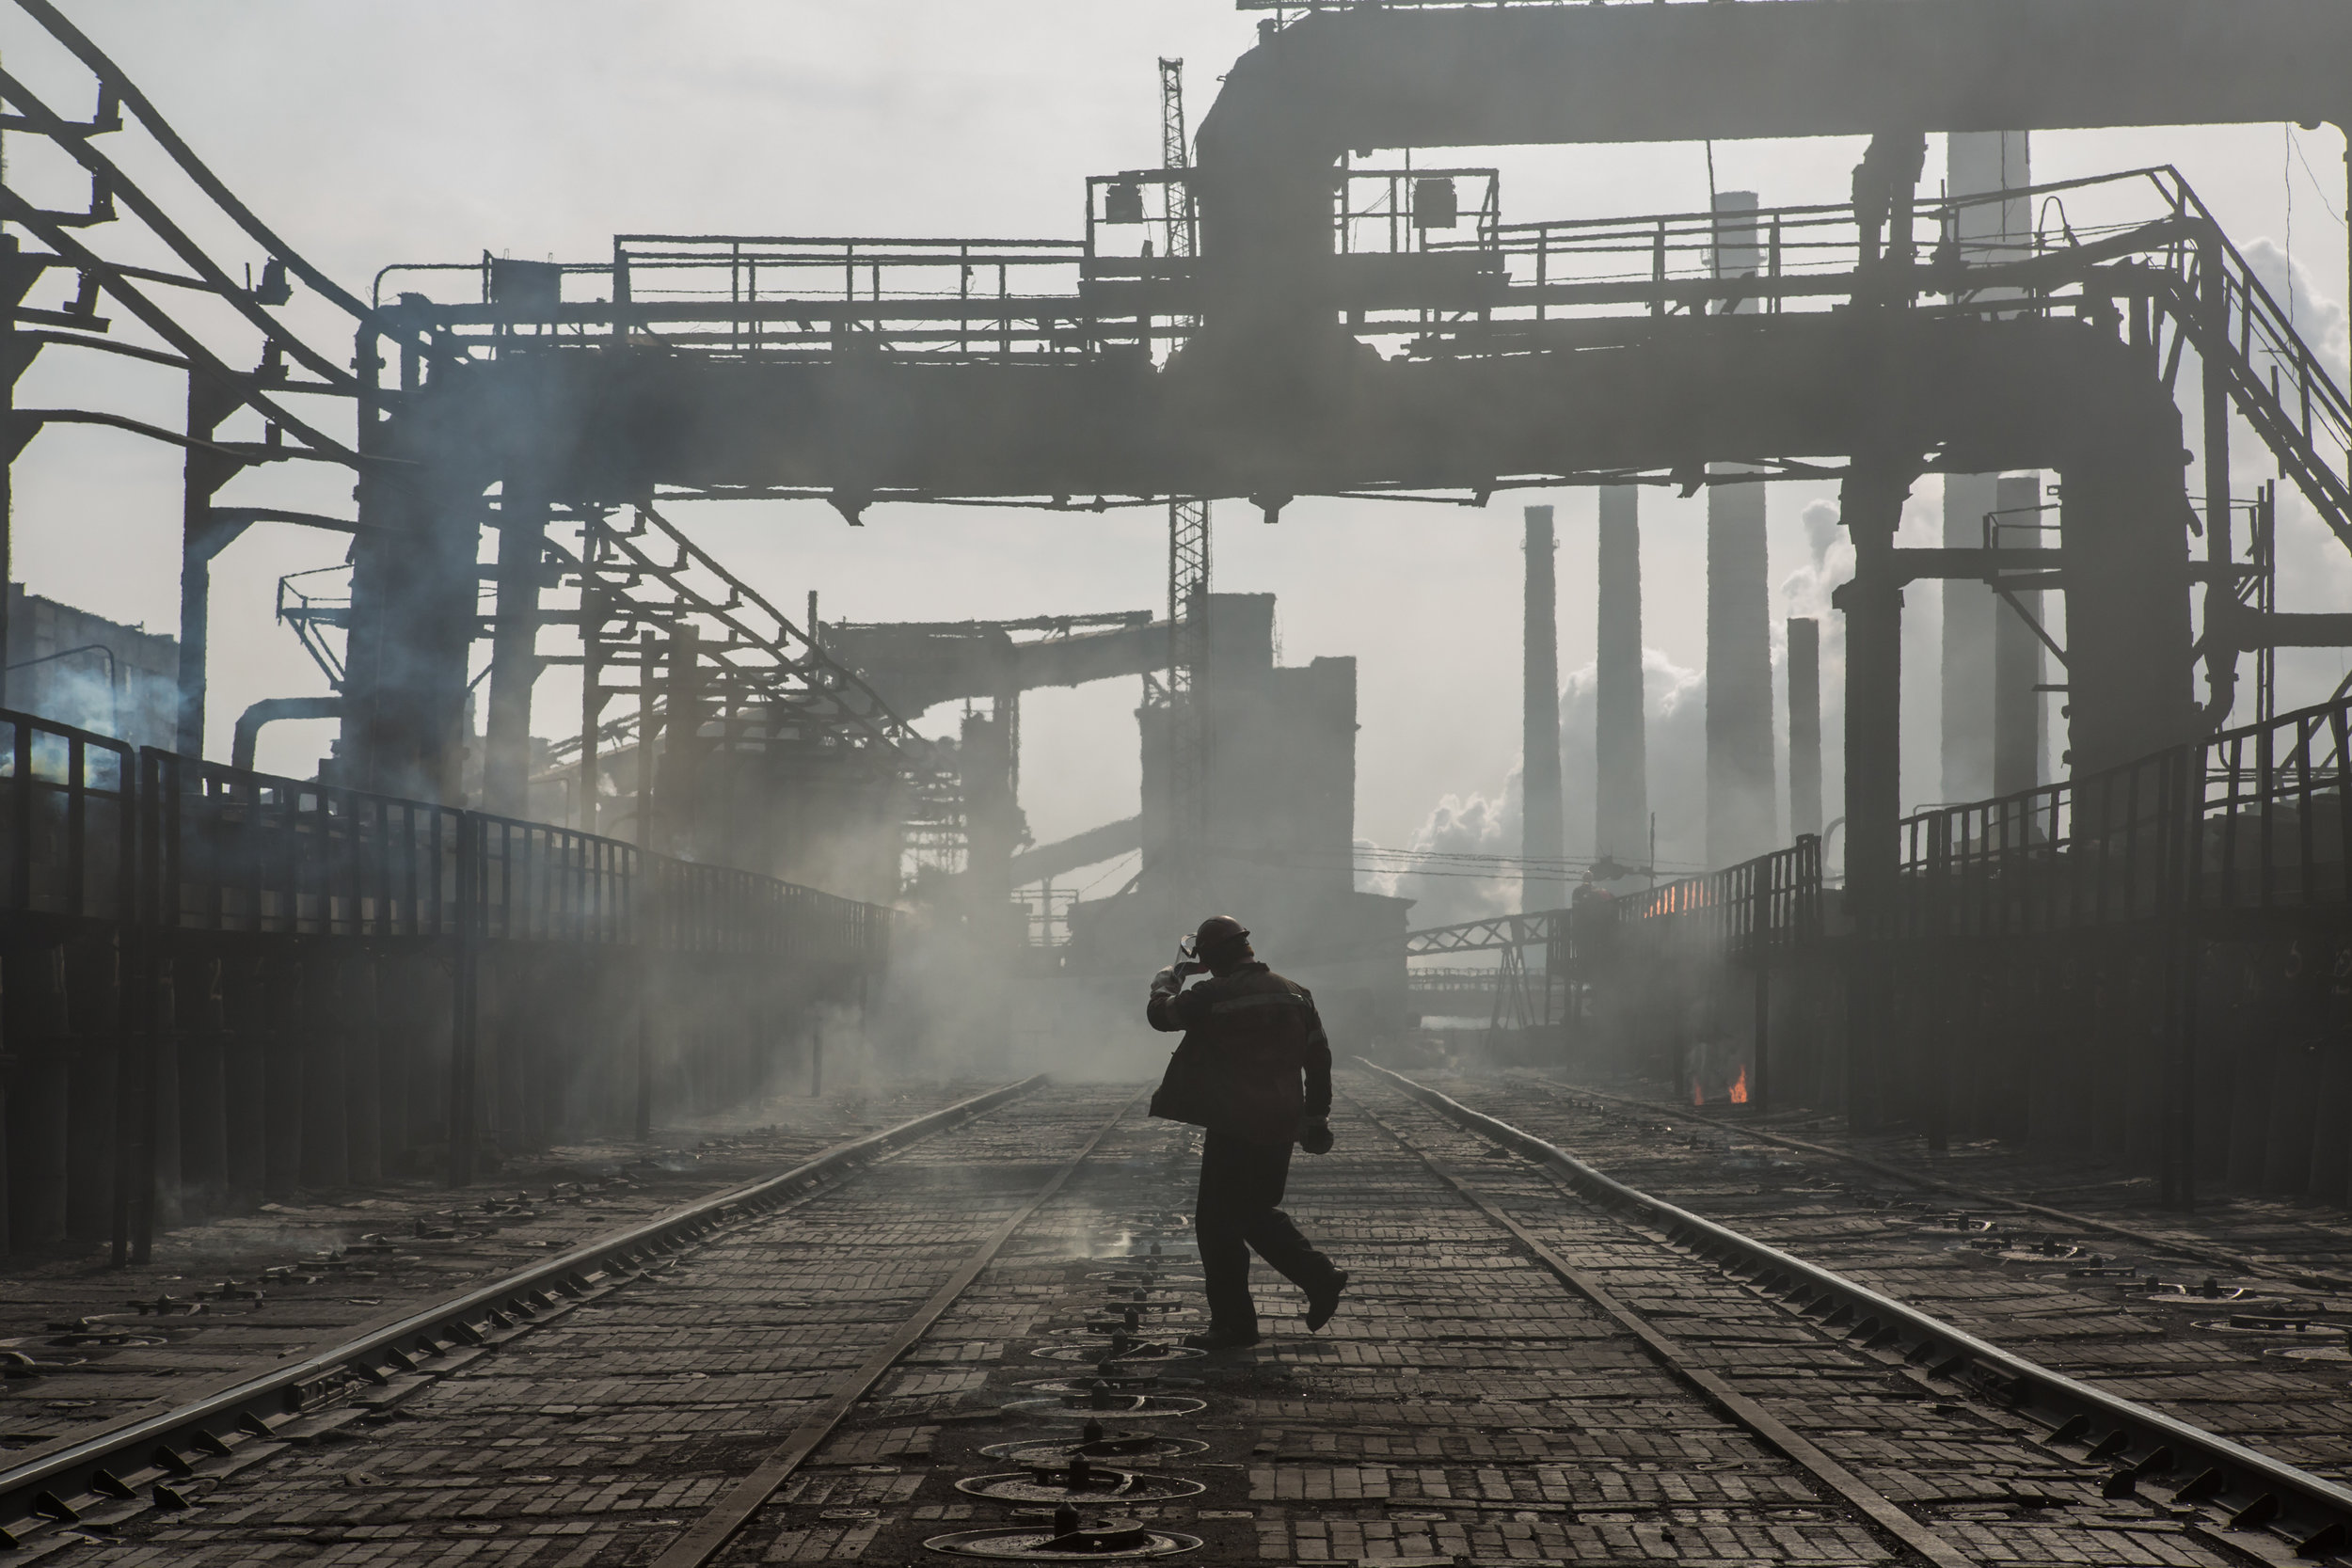 OKSANA PARAFENIUK |  www.oksanaparafeniuk.com  |  @oksana_par   A worker walks on top of a furnace at the Avdiivka Coke and Chemical Plant in Avdiivka, Donetsk region, Ukraine on March 13, 2017. The factory, the main supplier of the Ukrainian steel industry, is operating at a reduced capacity due to a shortage of coal from non-government controlled eastern Ukraine caused by a blockade.  [ U.S. News ]